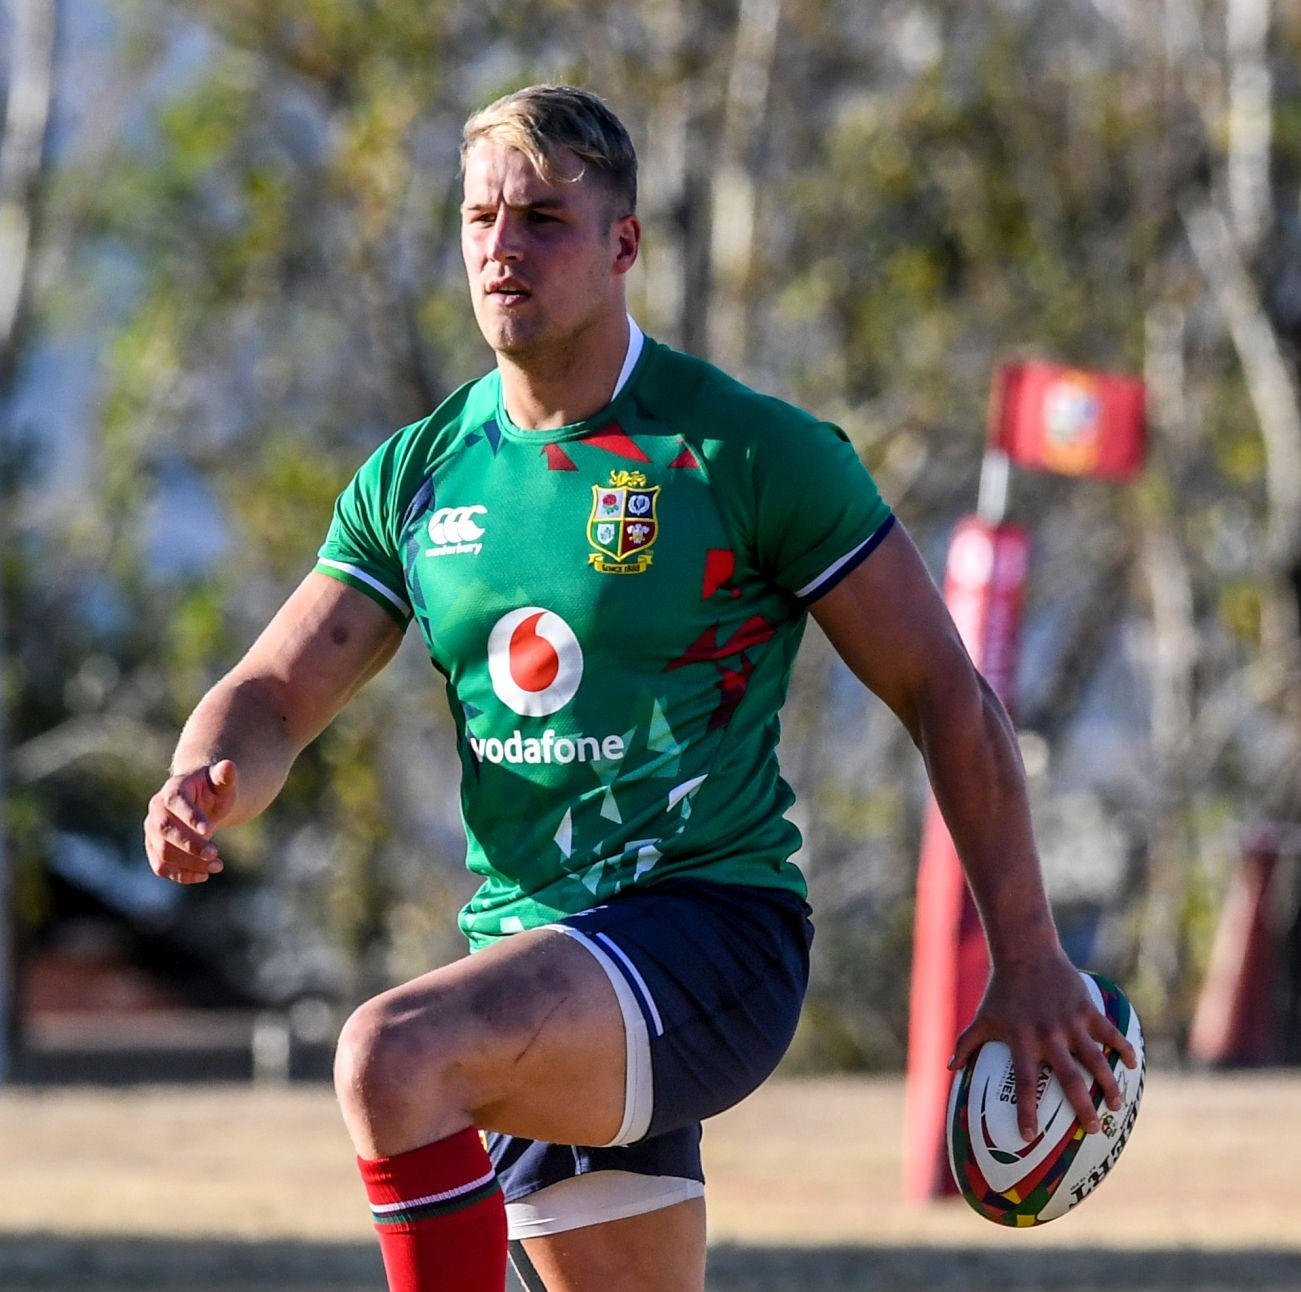 JOHANNESBURG, SOUTH AFRICA - JUNE 29: Duhan Van Der Merwe of the British and Irish Lions during the British and Irish Lions rugby team training session at St Peter's College on June 29, 2021 in Johannesburg, South Africa. (Photo by Sydney Seshibedi/Gallo Images via Getty Images)